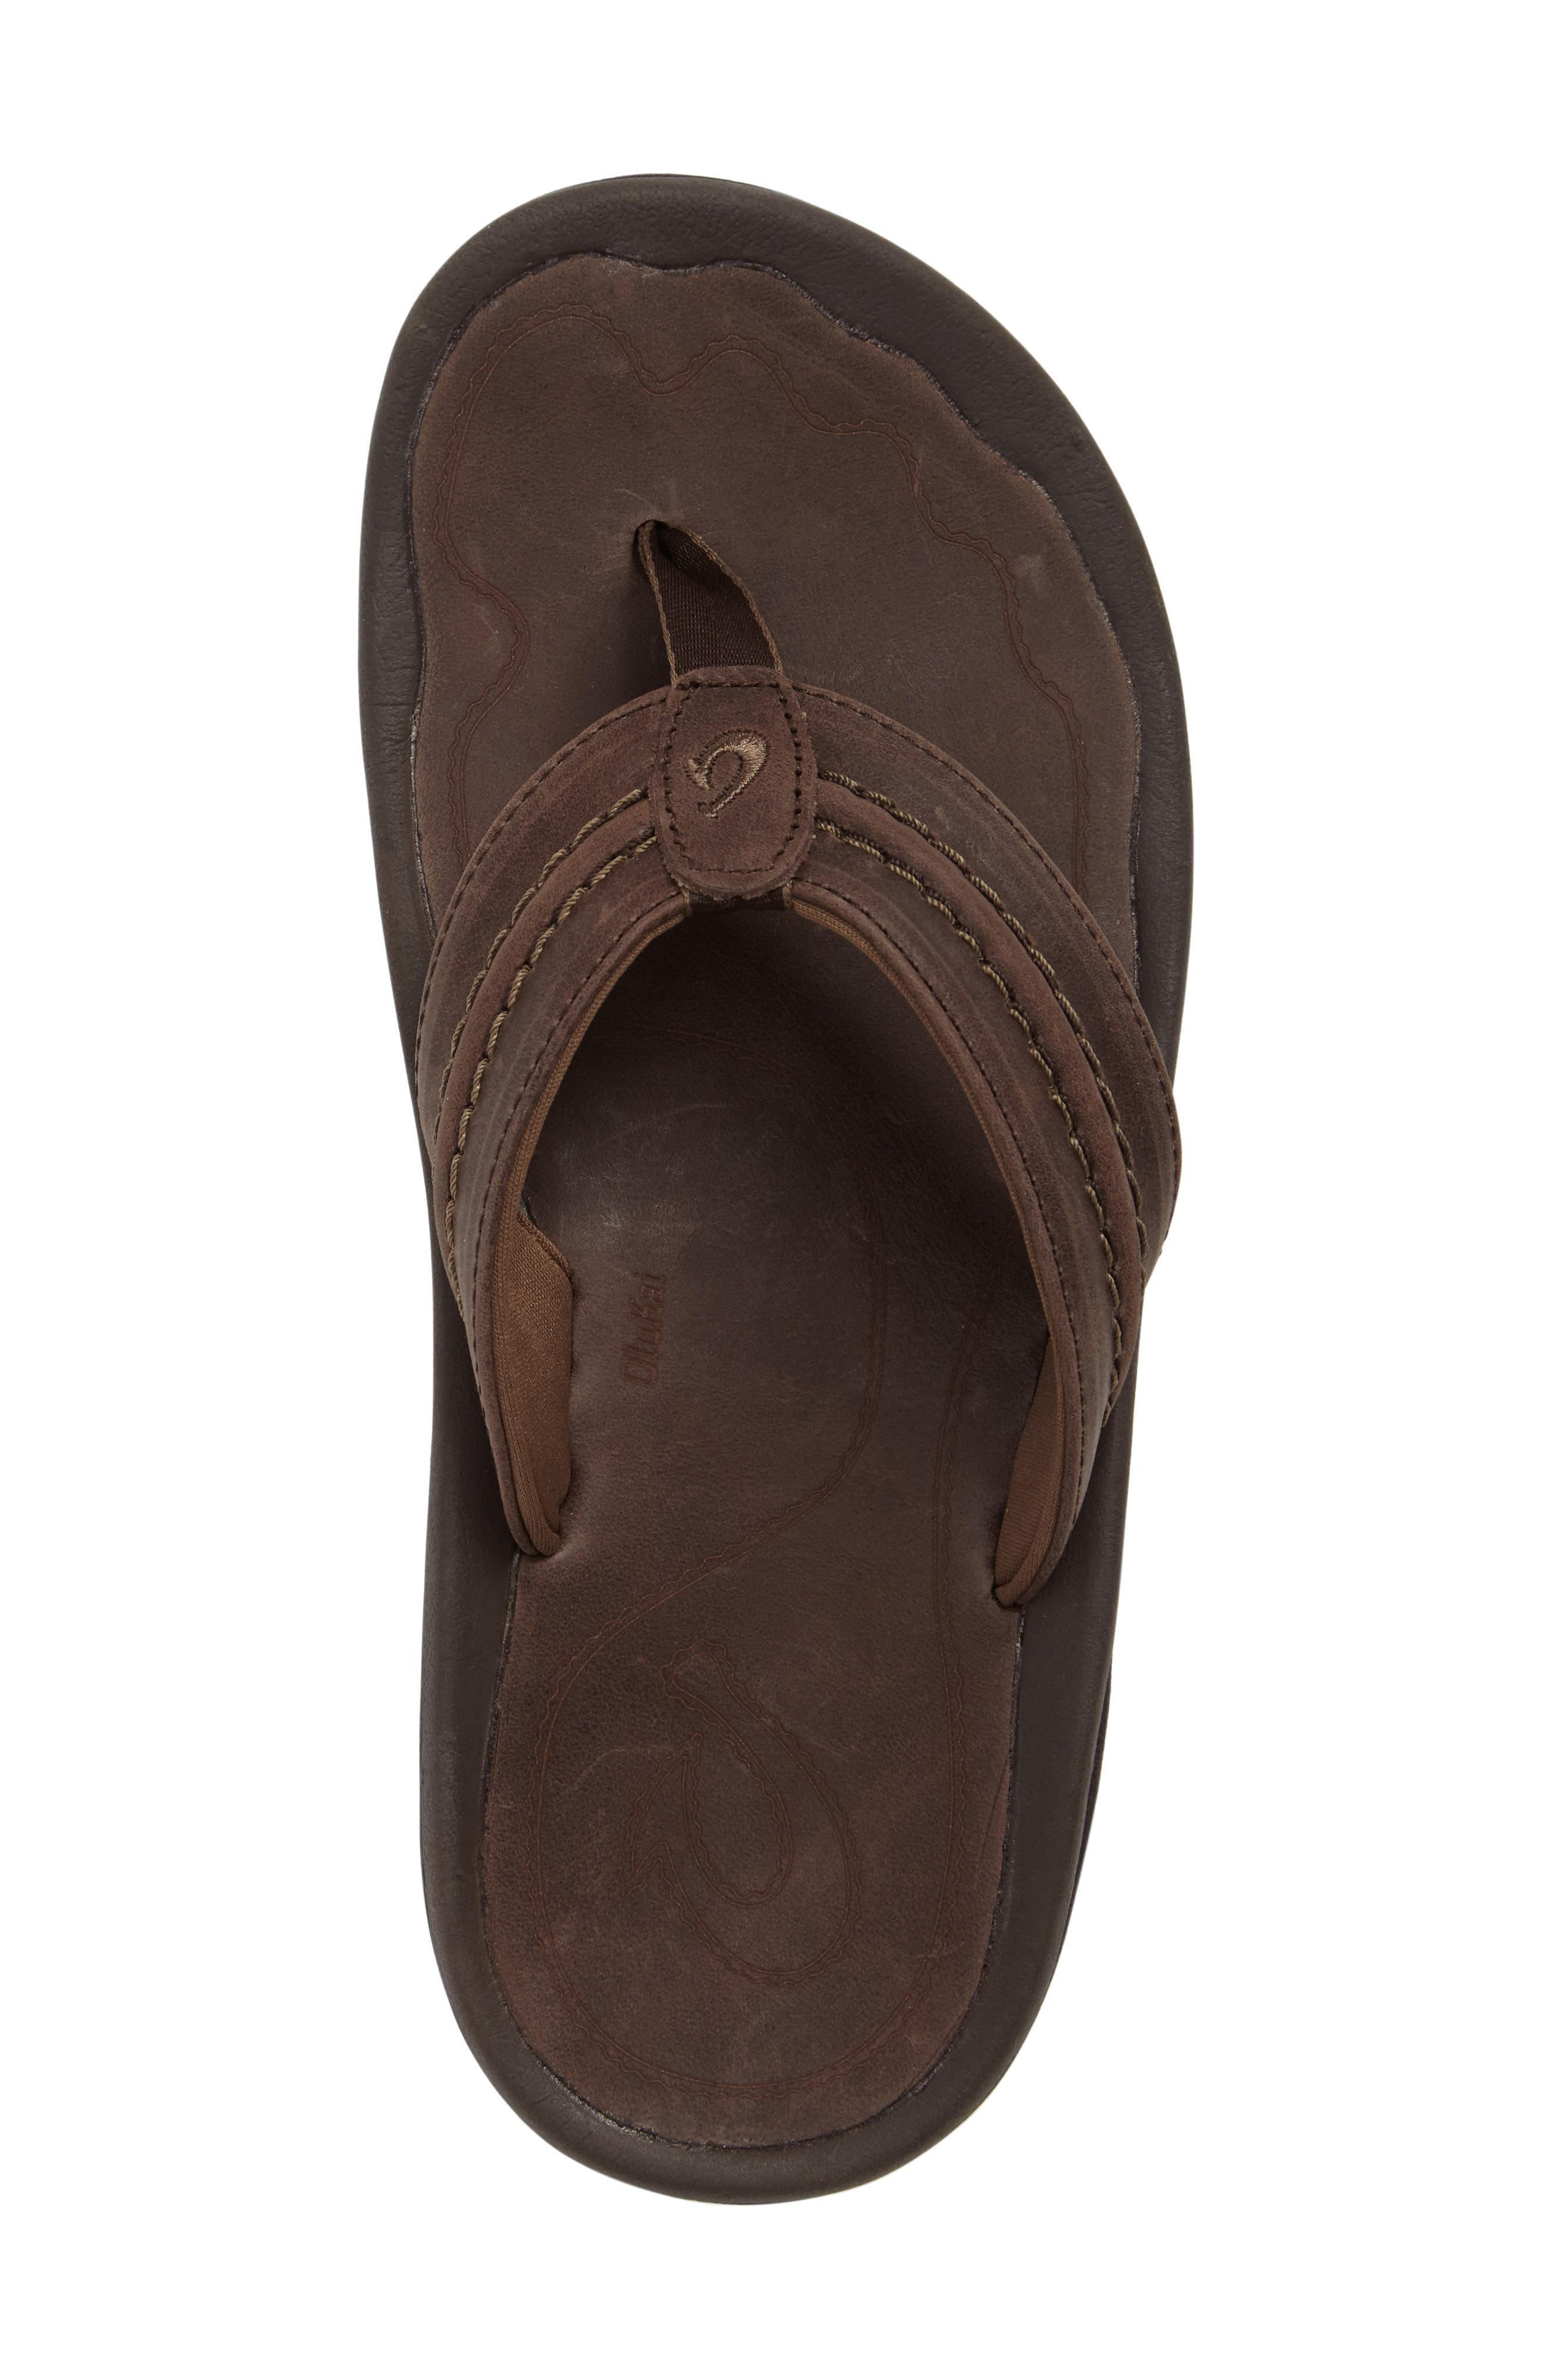 Hokua Flip Flop,                             Alternate thumbnail 5, color,                             DARK WOOD LEATHER